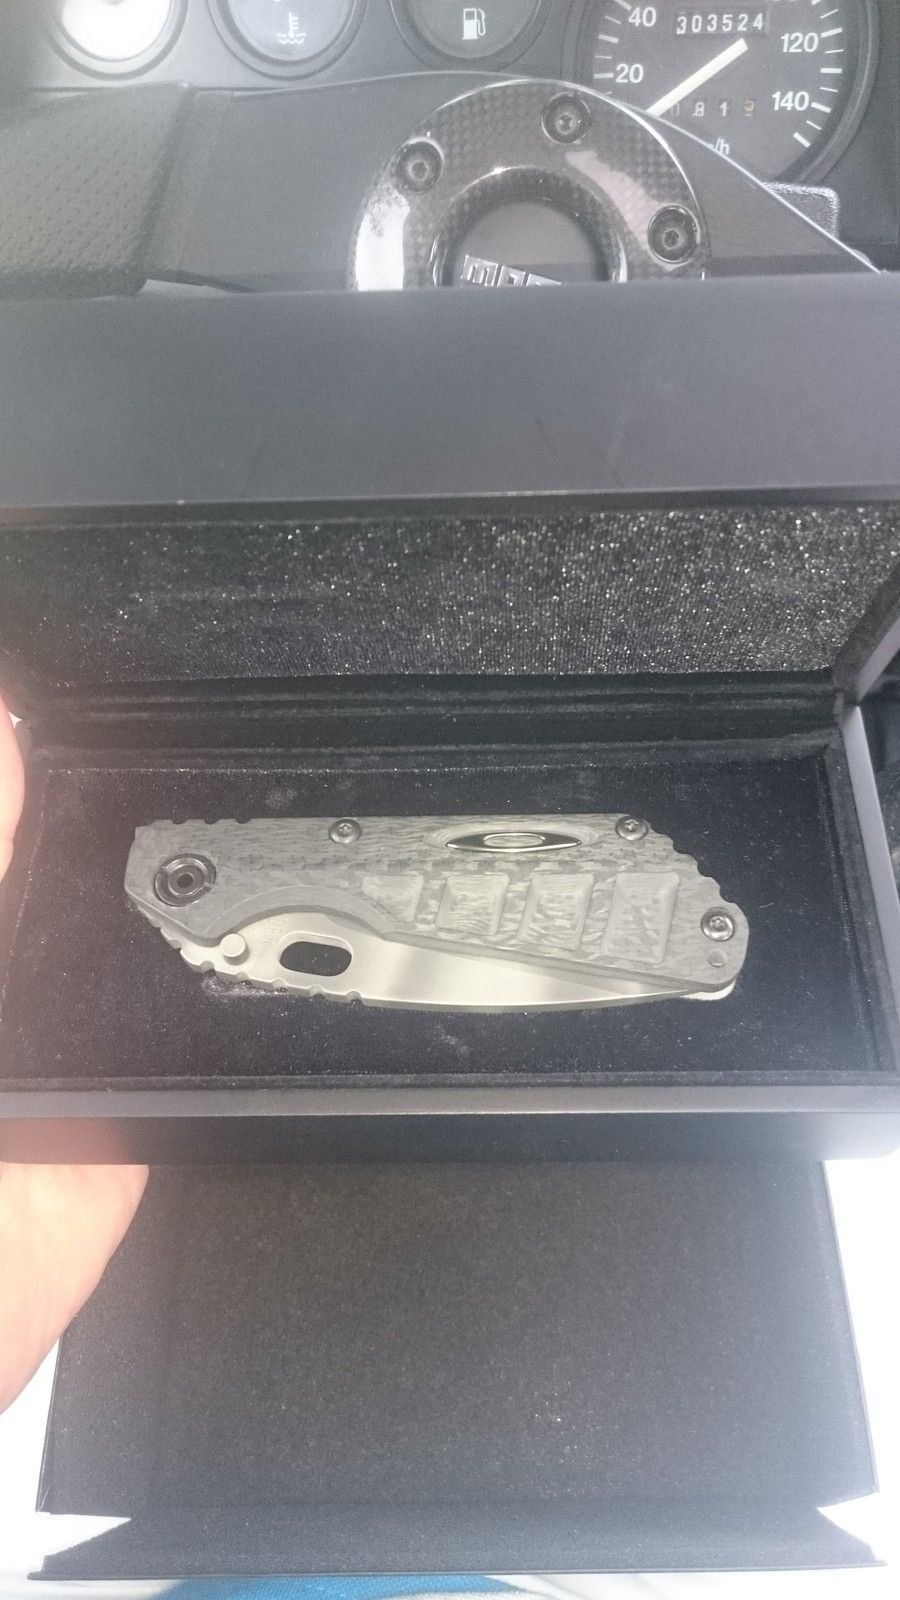 Oakley Knife Elite Strider Machined Carbon Fiber SNG with camo blade - 2015-07-15 15.58.34.jpg